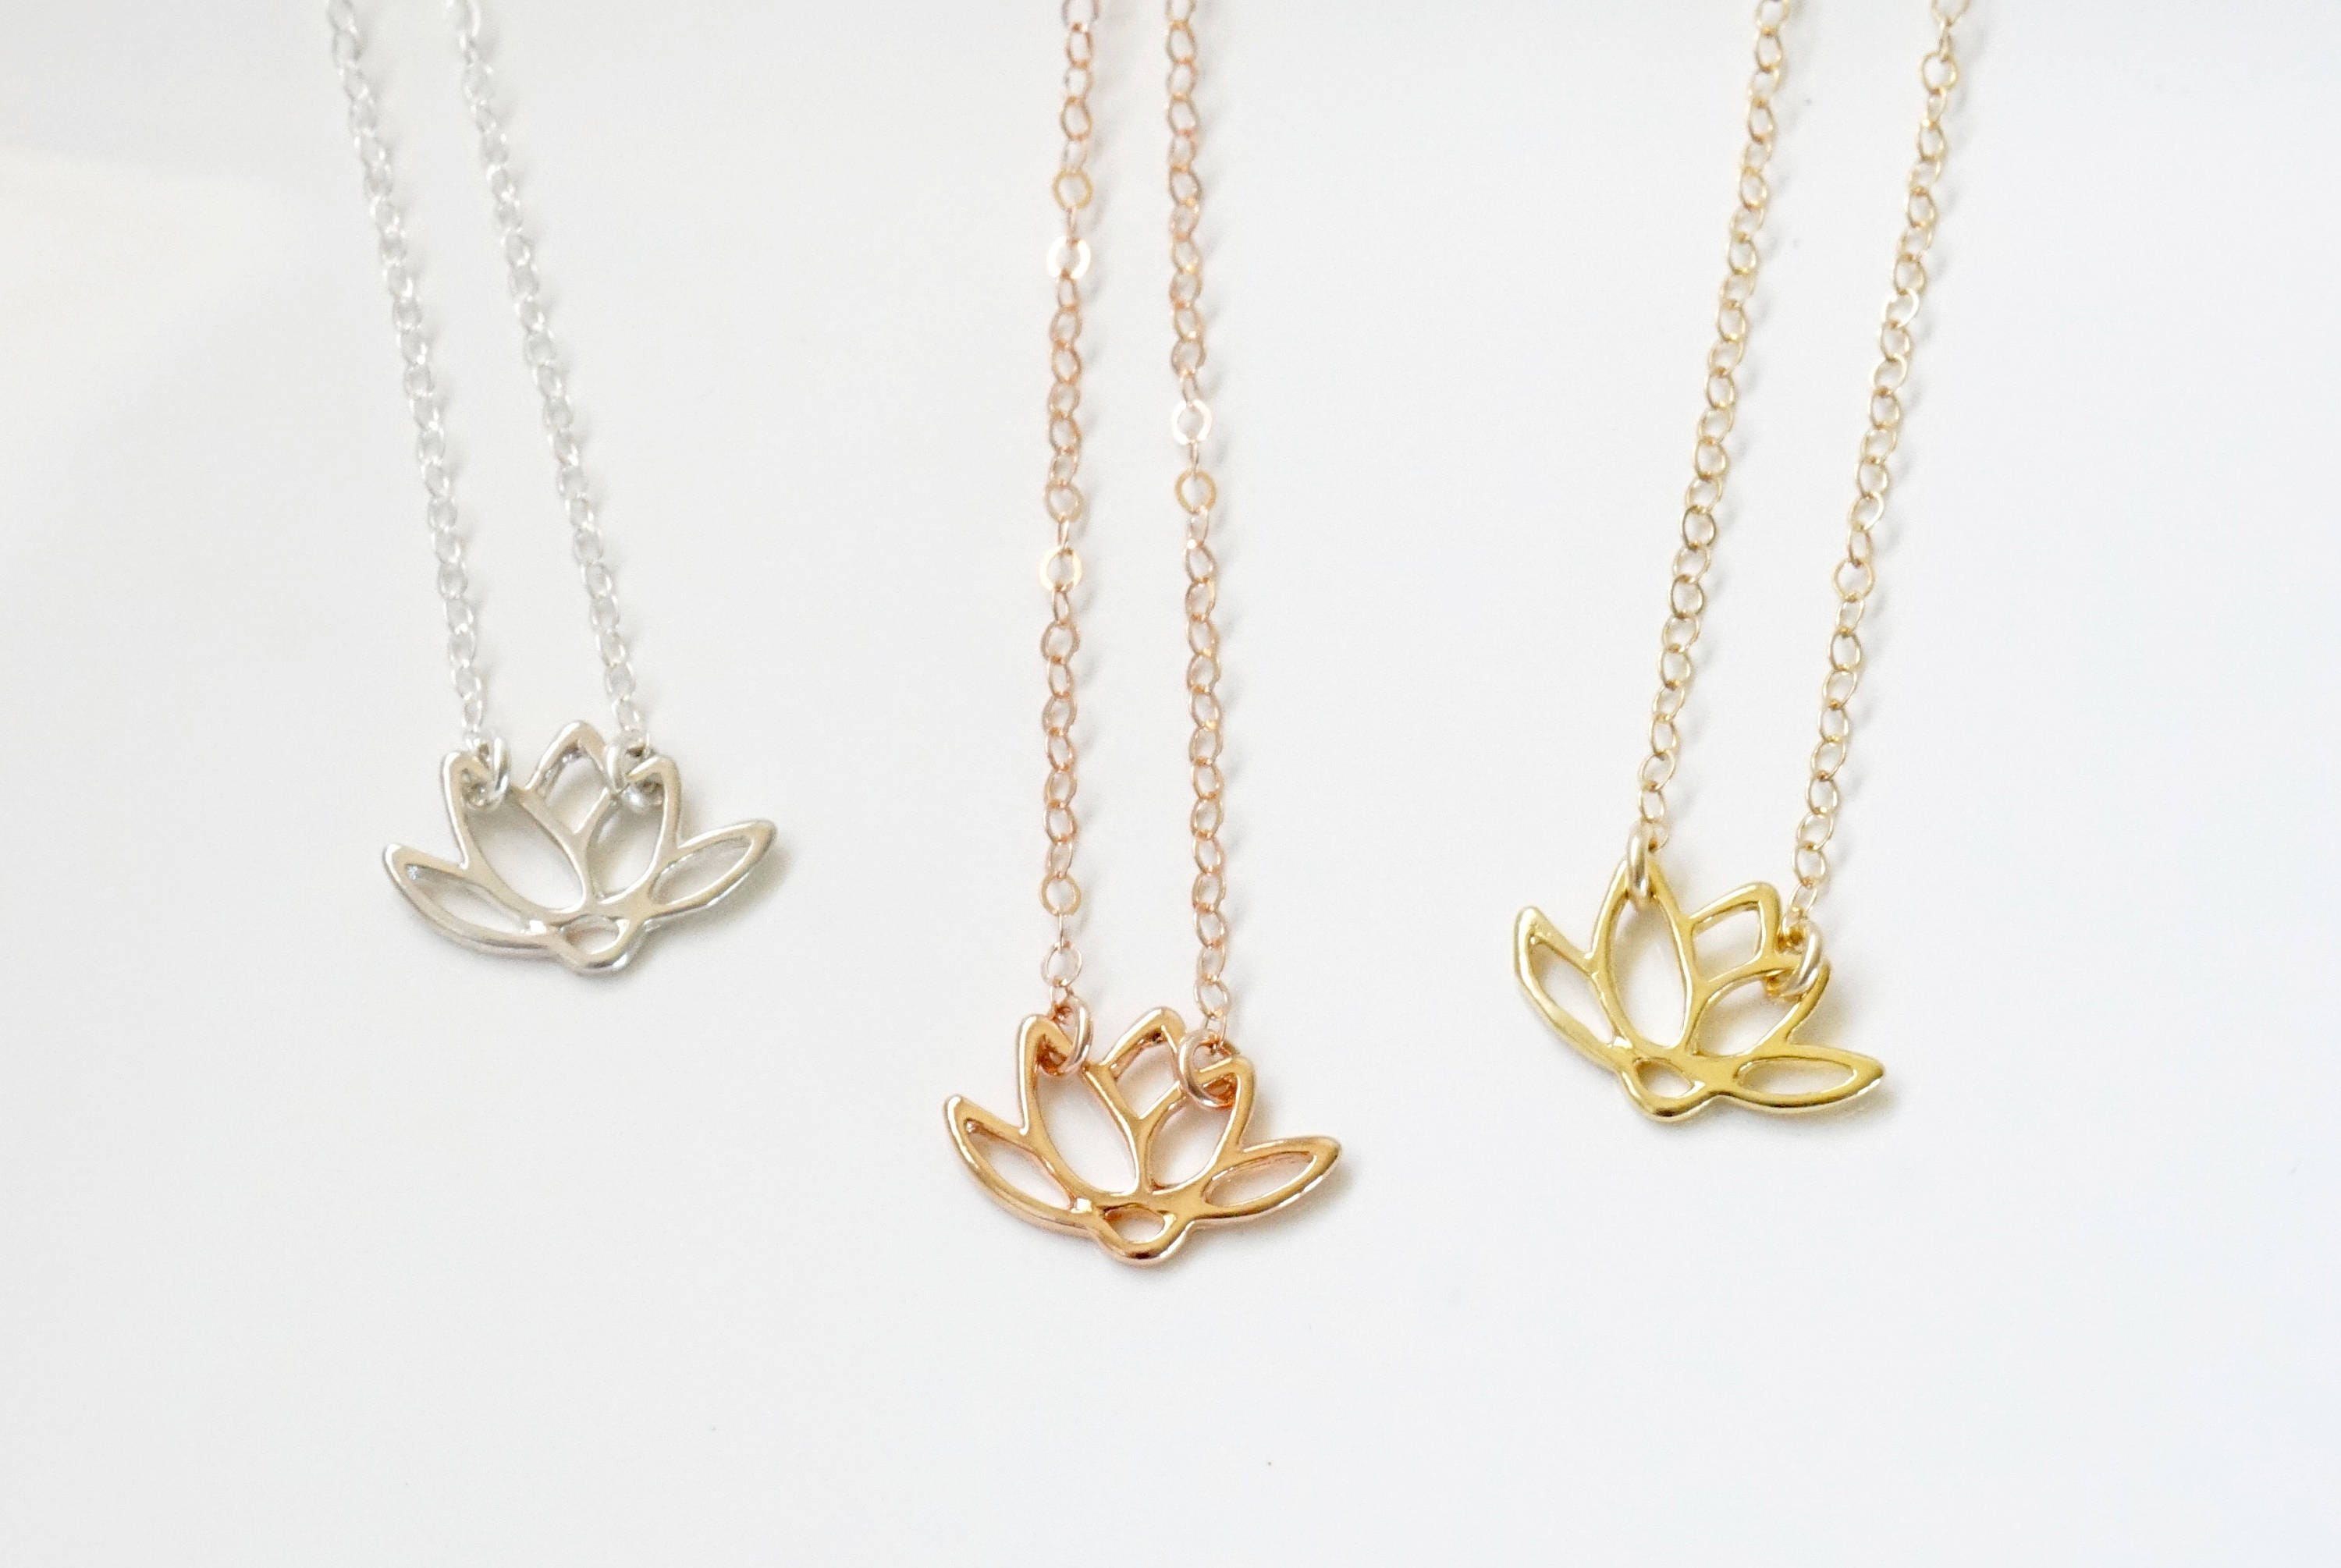 Lotus Flower Necklace Lotus Flower Choker Gold Lotus Flower